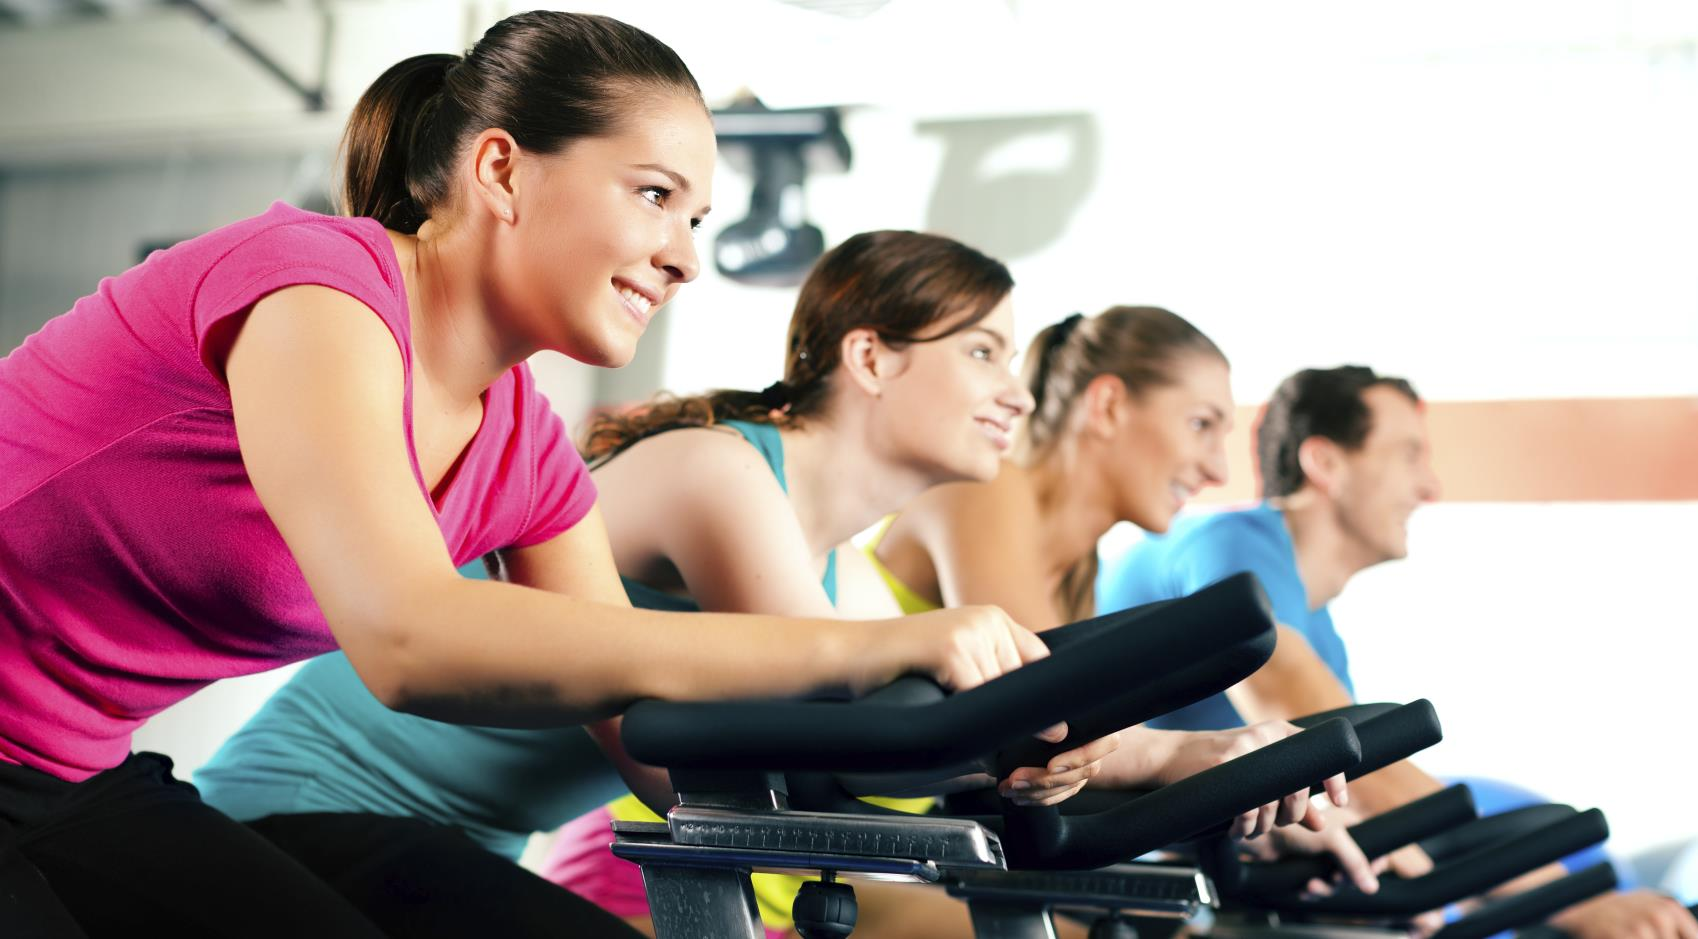 health and fitness analysis Fitness industry analysis 2018 - cost & trends or perhaps more accurately, the idea of fitness is in one out of every five americans are heading to the gym.